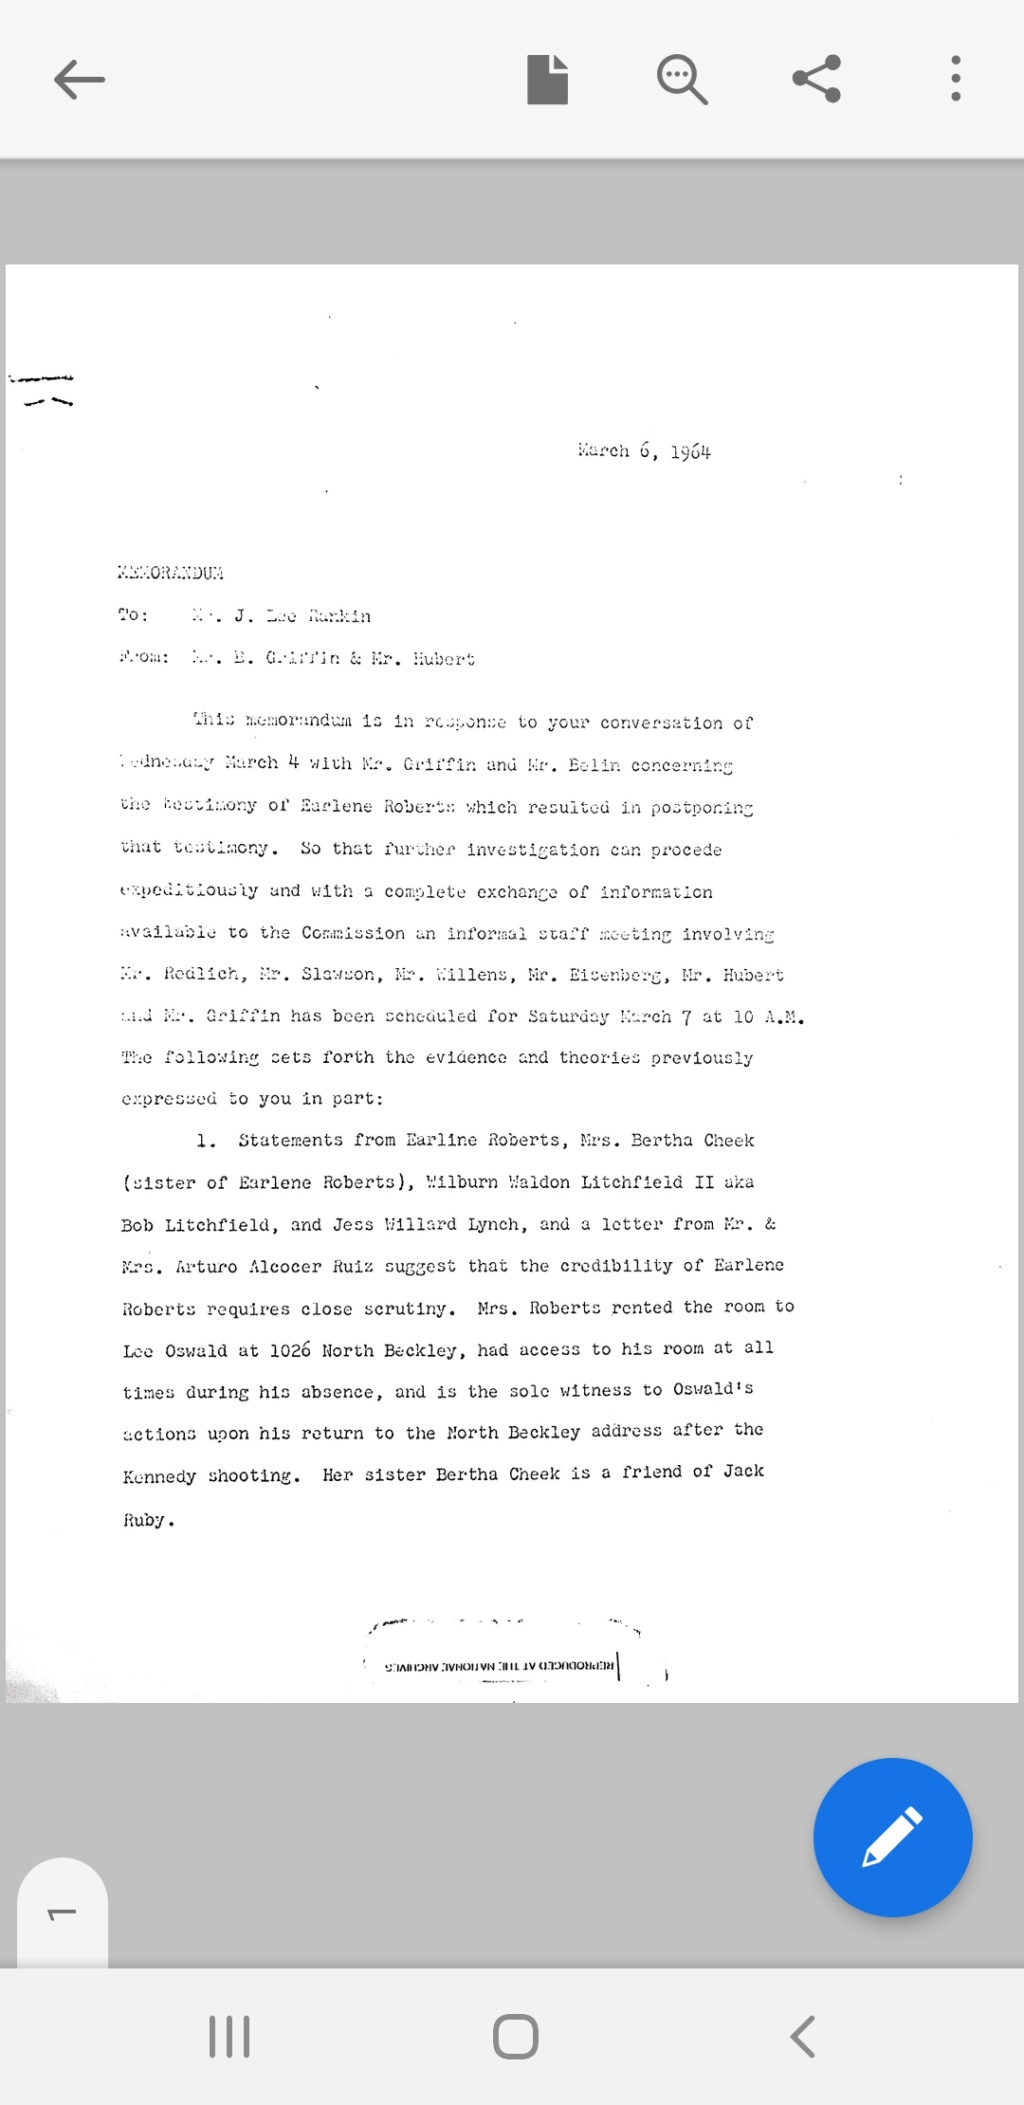 Did Oswald deny living at 1026 N Beckley?  - Page 6 Scree268